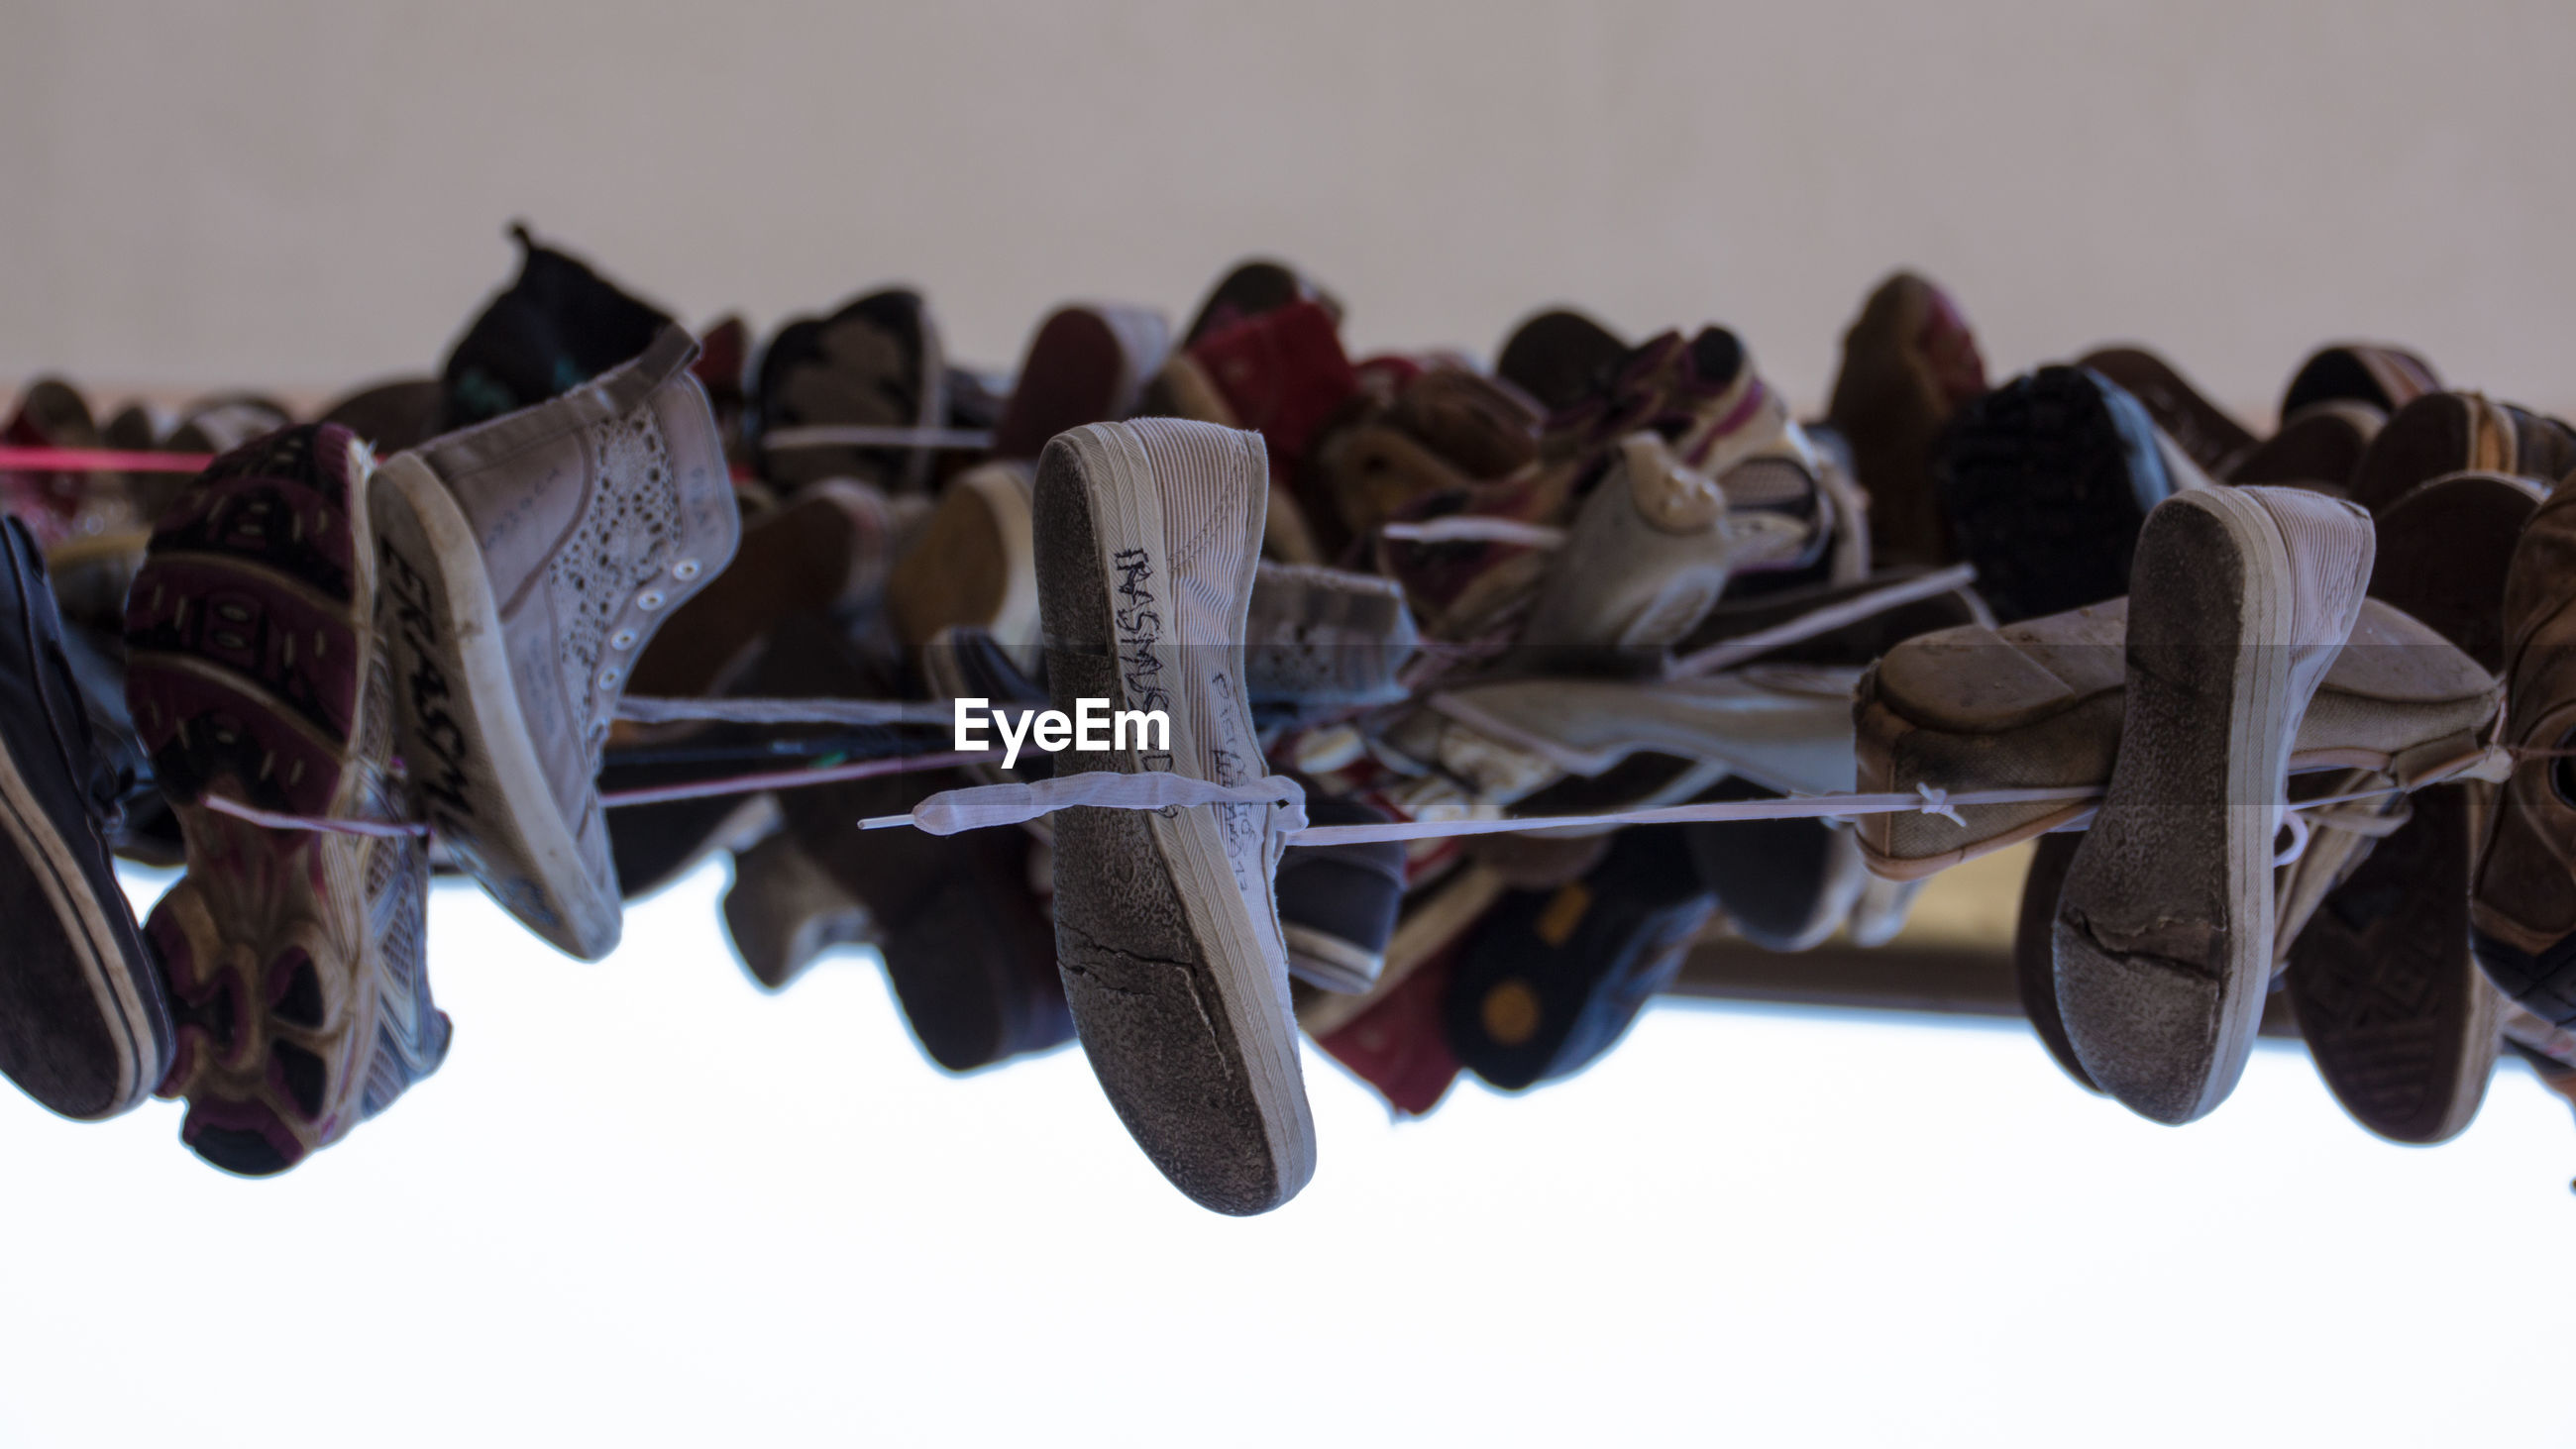 CLOSE-UP OF SHOES HANGING ON ROPE